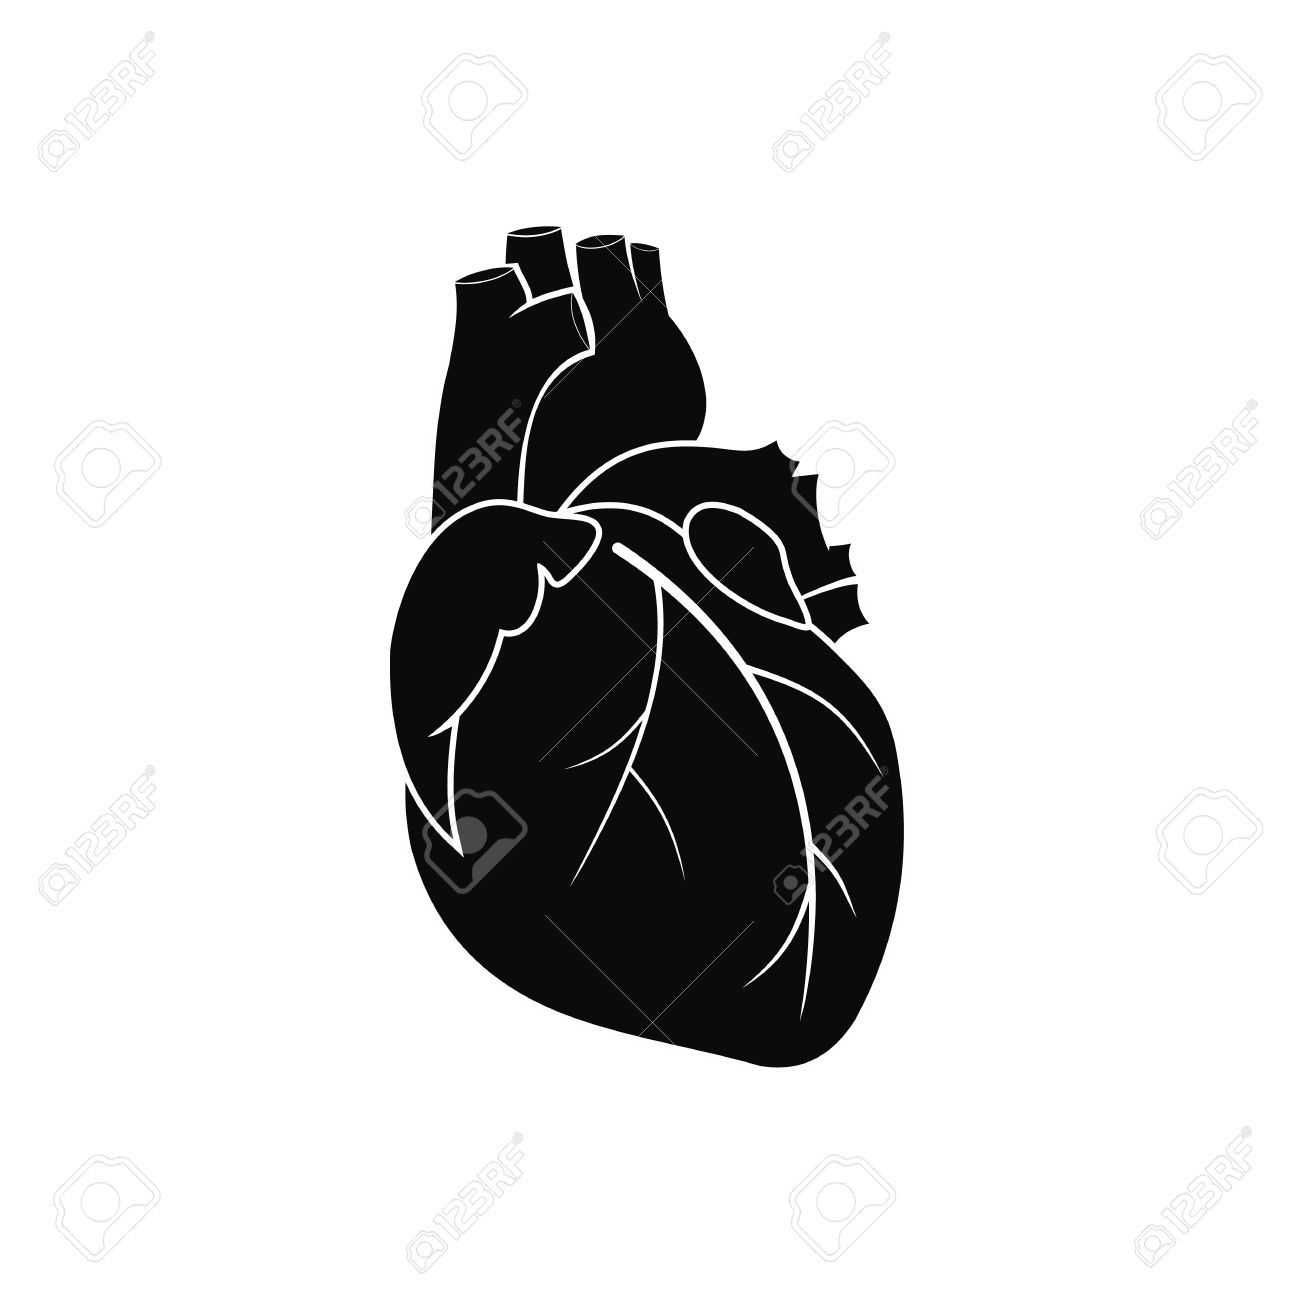 Human heart black simple icon isolated on white background - 51642833